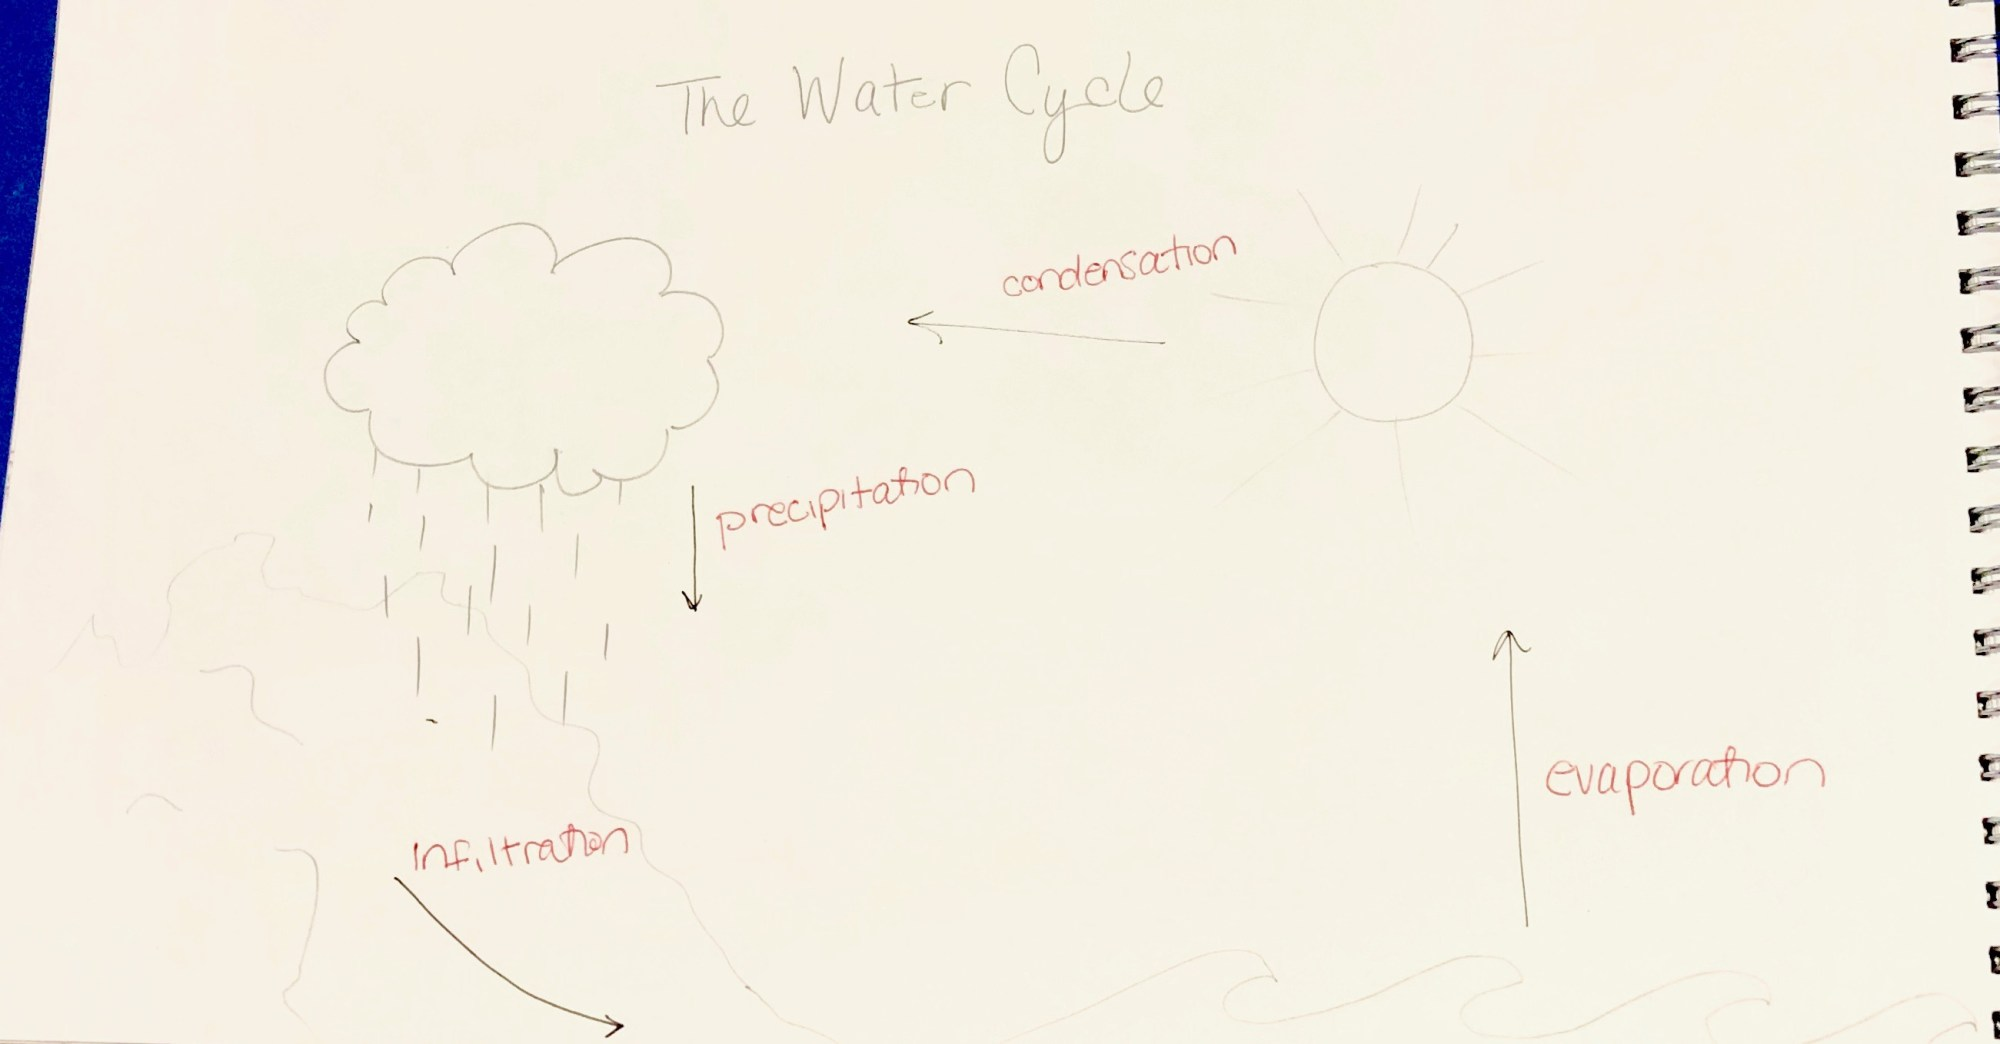 hight resolution of for my explanation graphic i decided to focus on the water cycle or how water evaporates from the surfaces on earth rises into the atmosphere